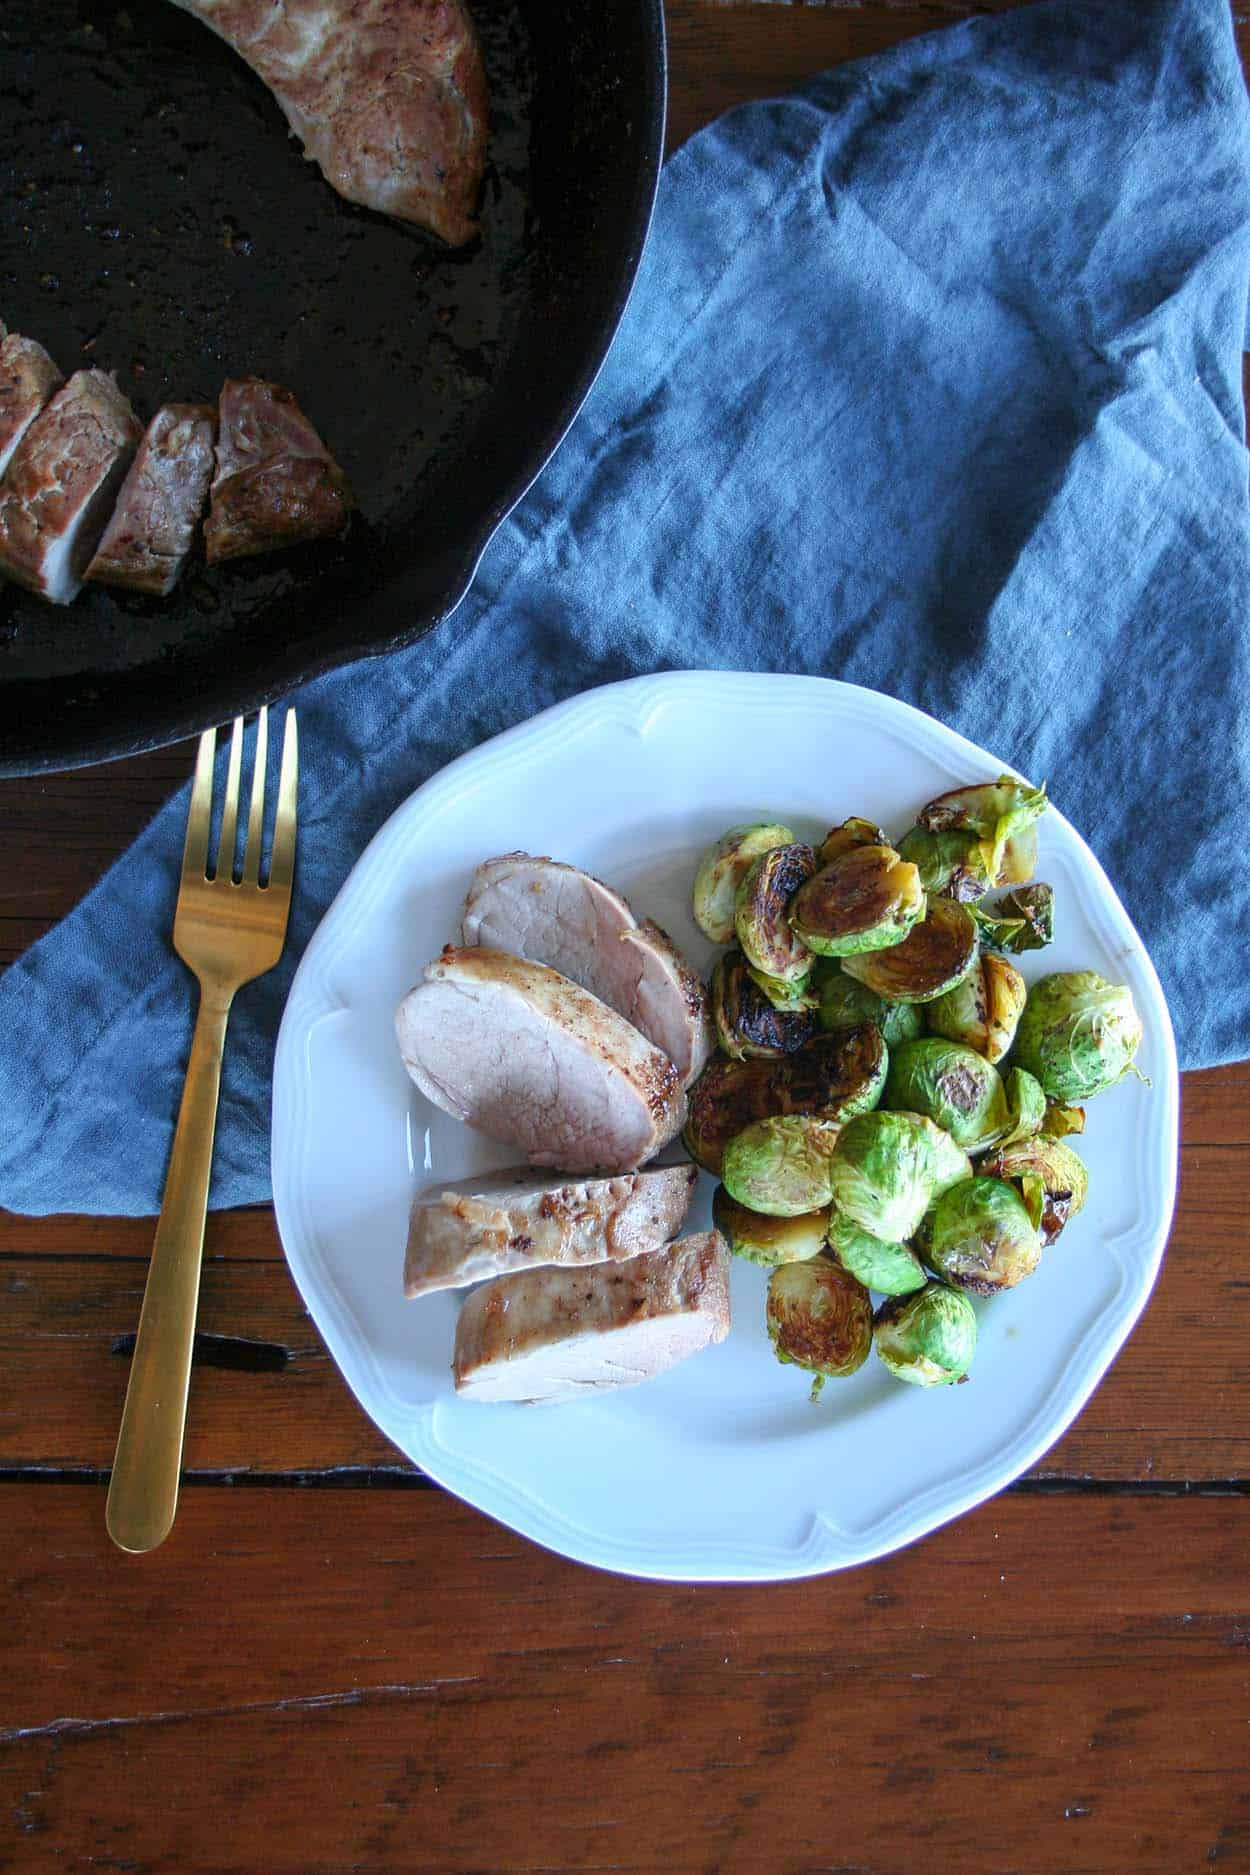 Weeknight Dinner Made Simple With This Asian Inspired Ginger Orange Pork Tenderloin 4 Ingredient